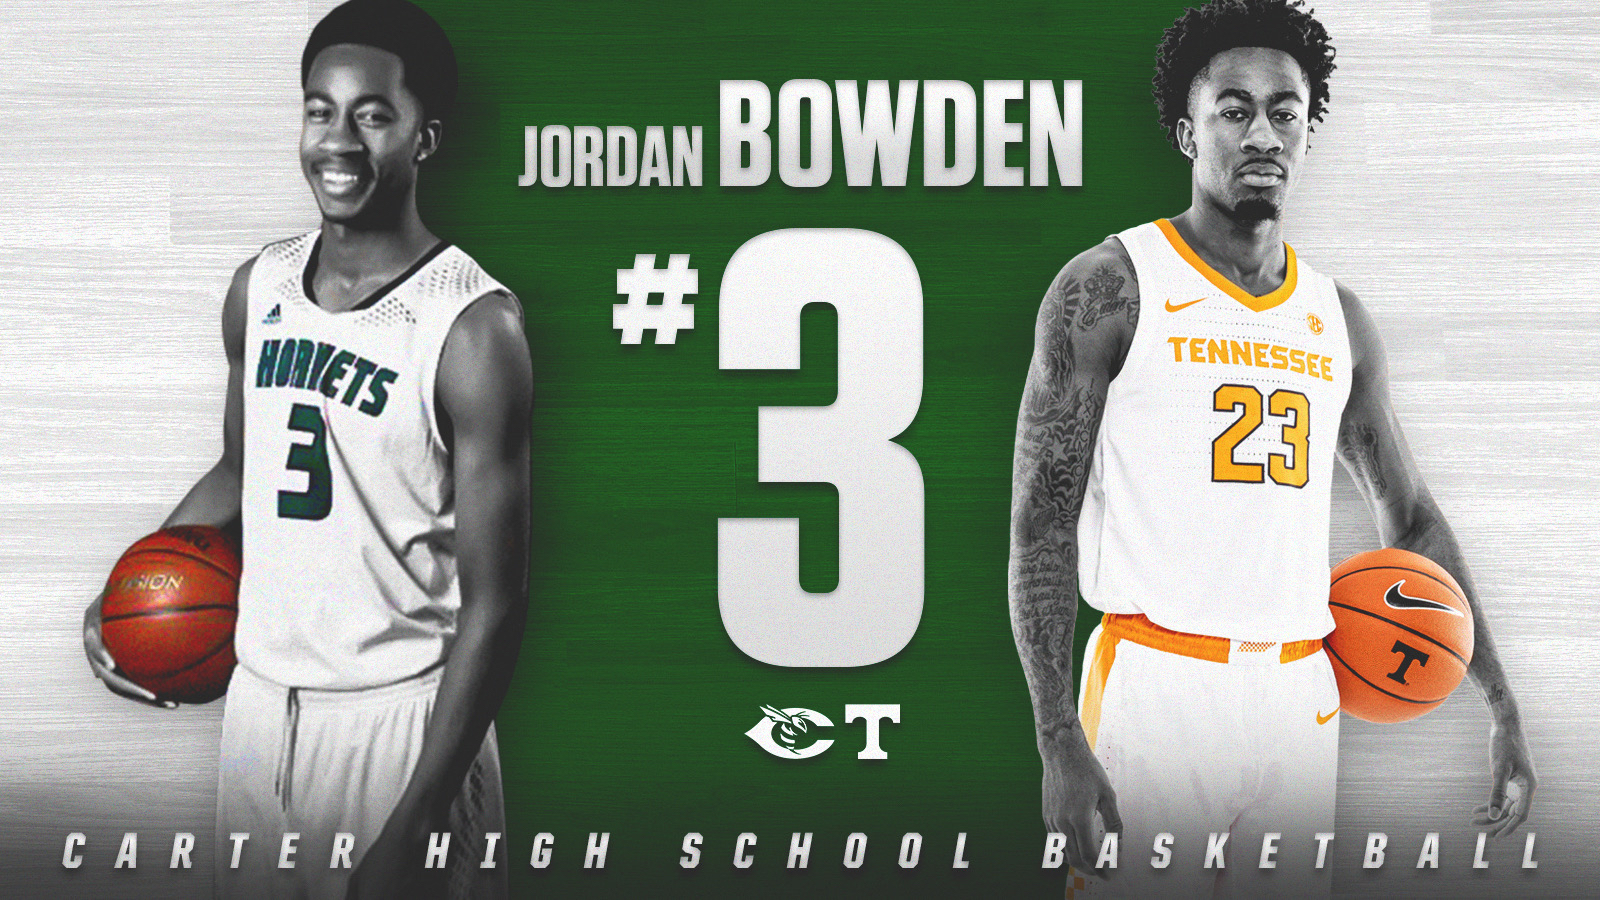 BREAKING NEWS: Carter High School to retire Jordan Bowden's Jersey on December 19, 2019 @jordybow3 @vol_hoops @5starpreps @prepxtra